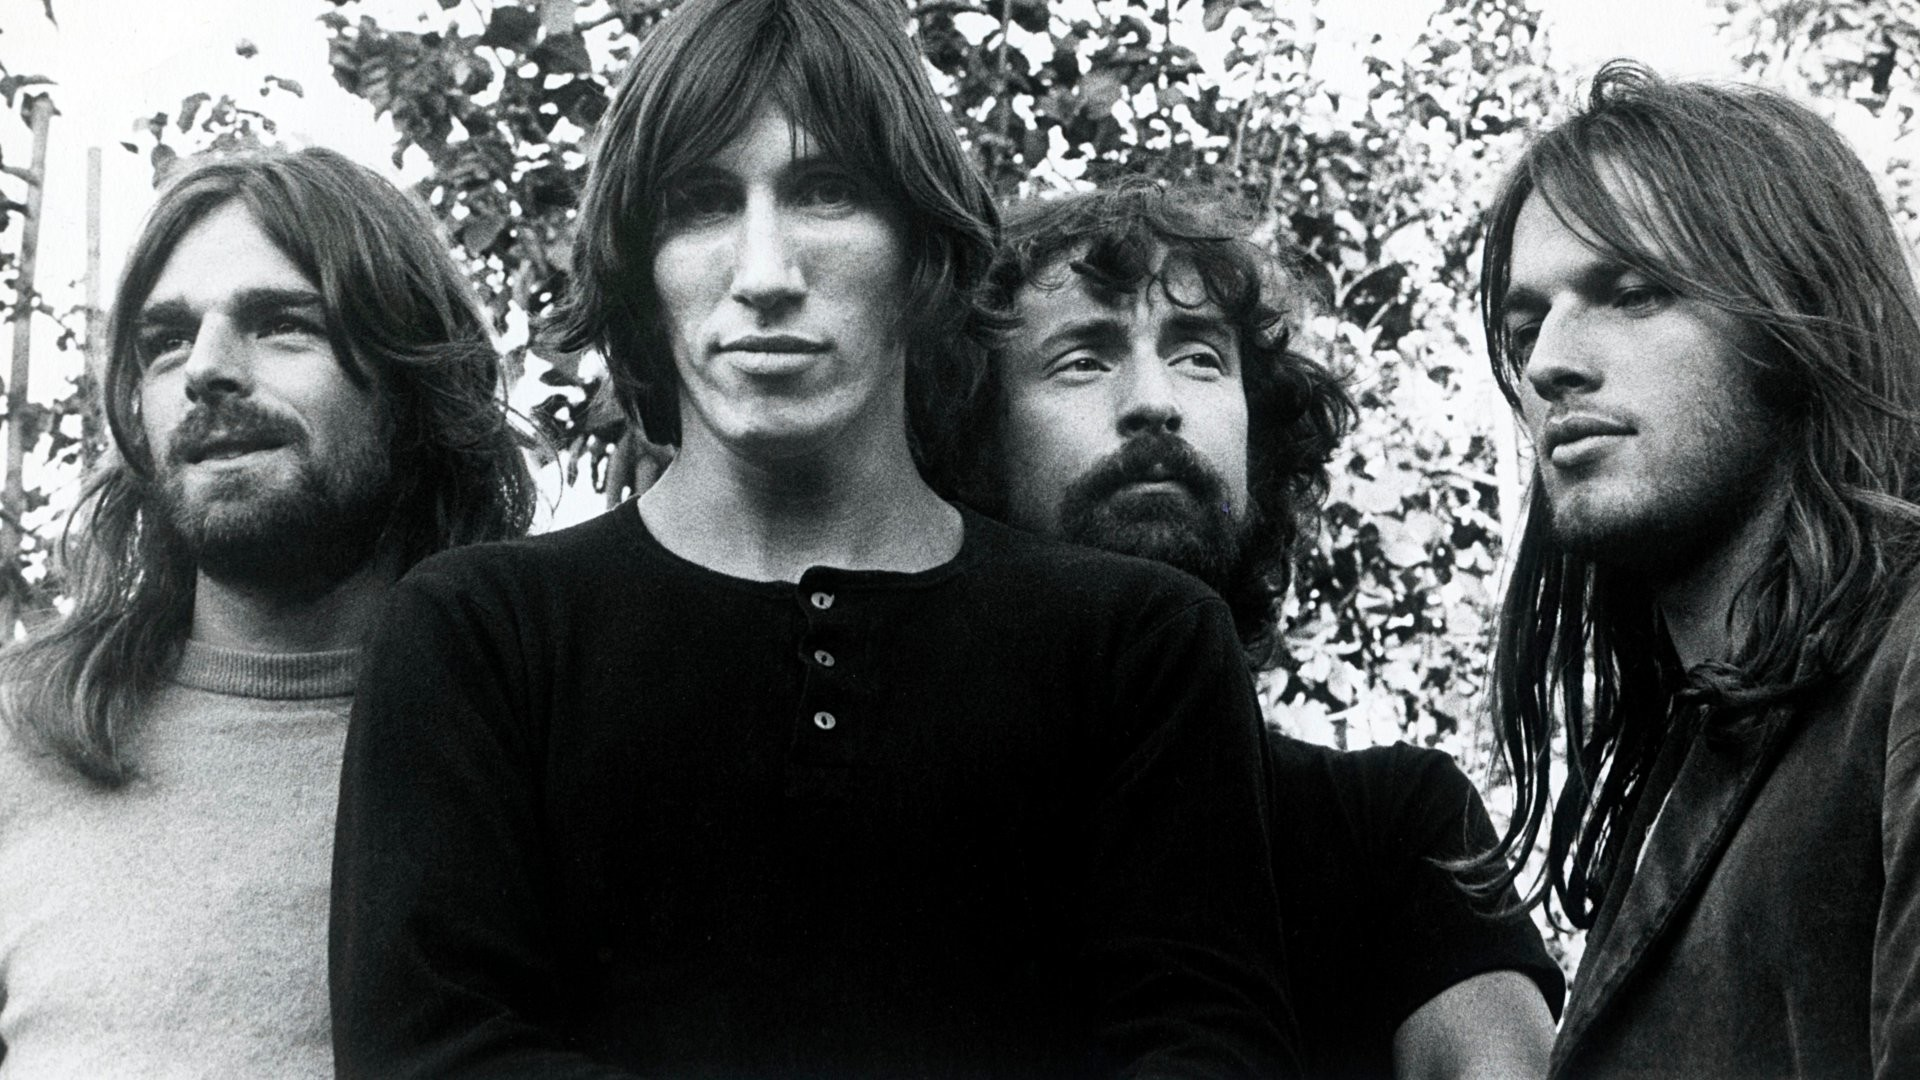 1920x1080 ... Pink Floyd Band Members Wallpaper DSOTM Era 1973